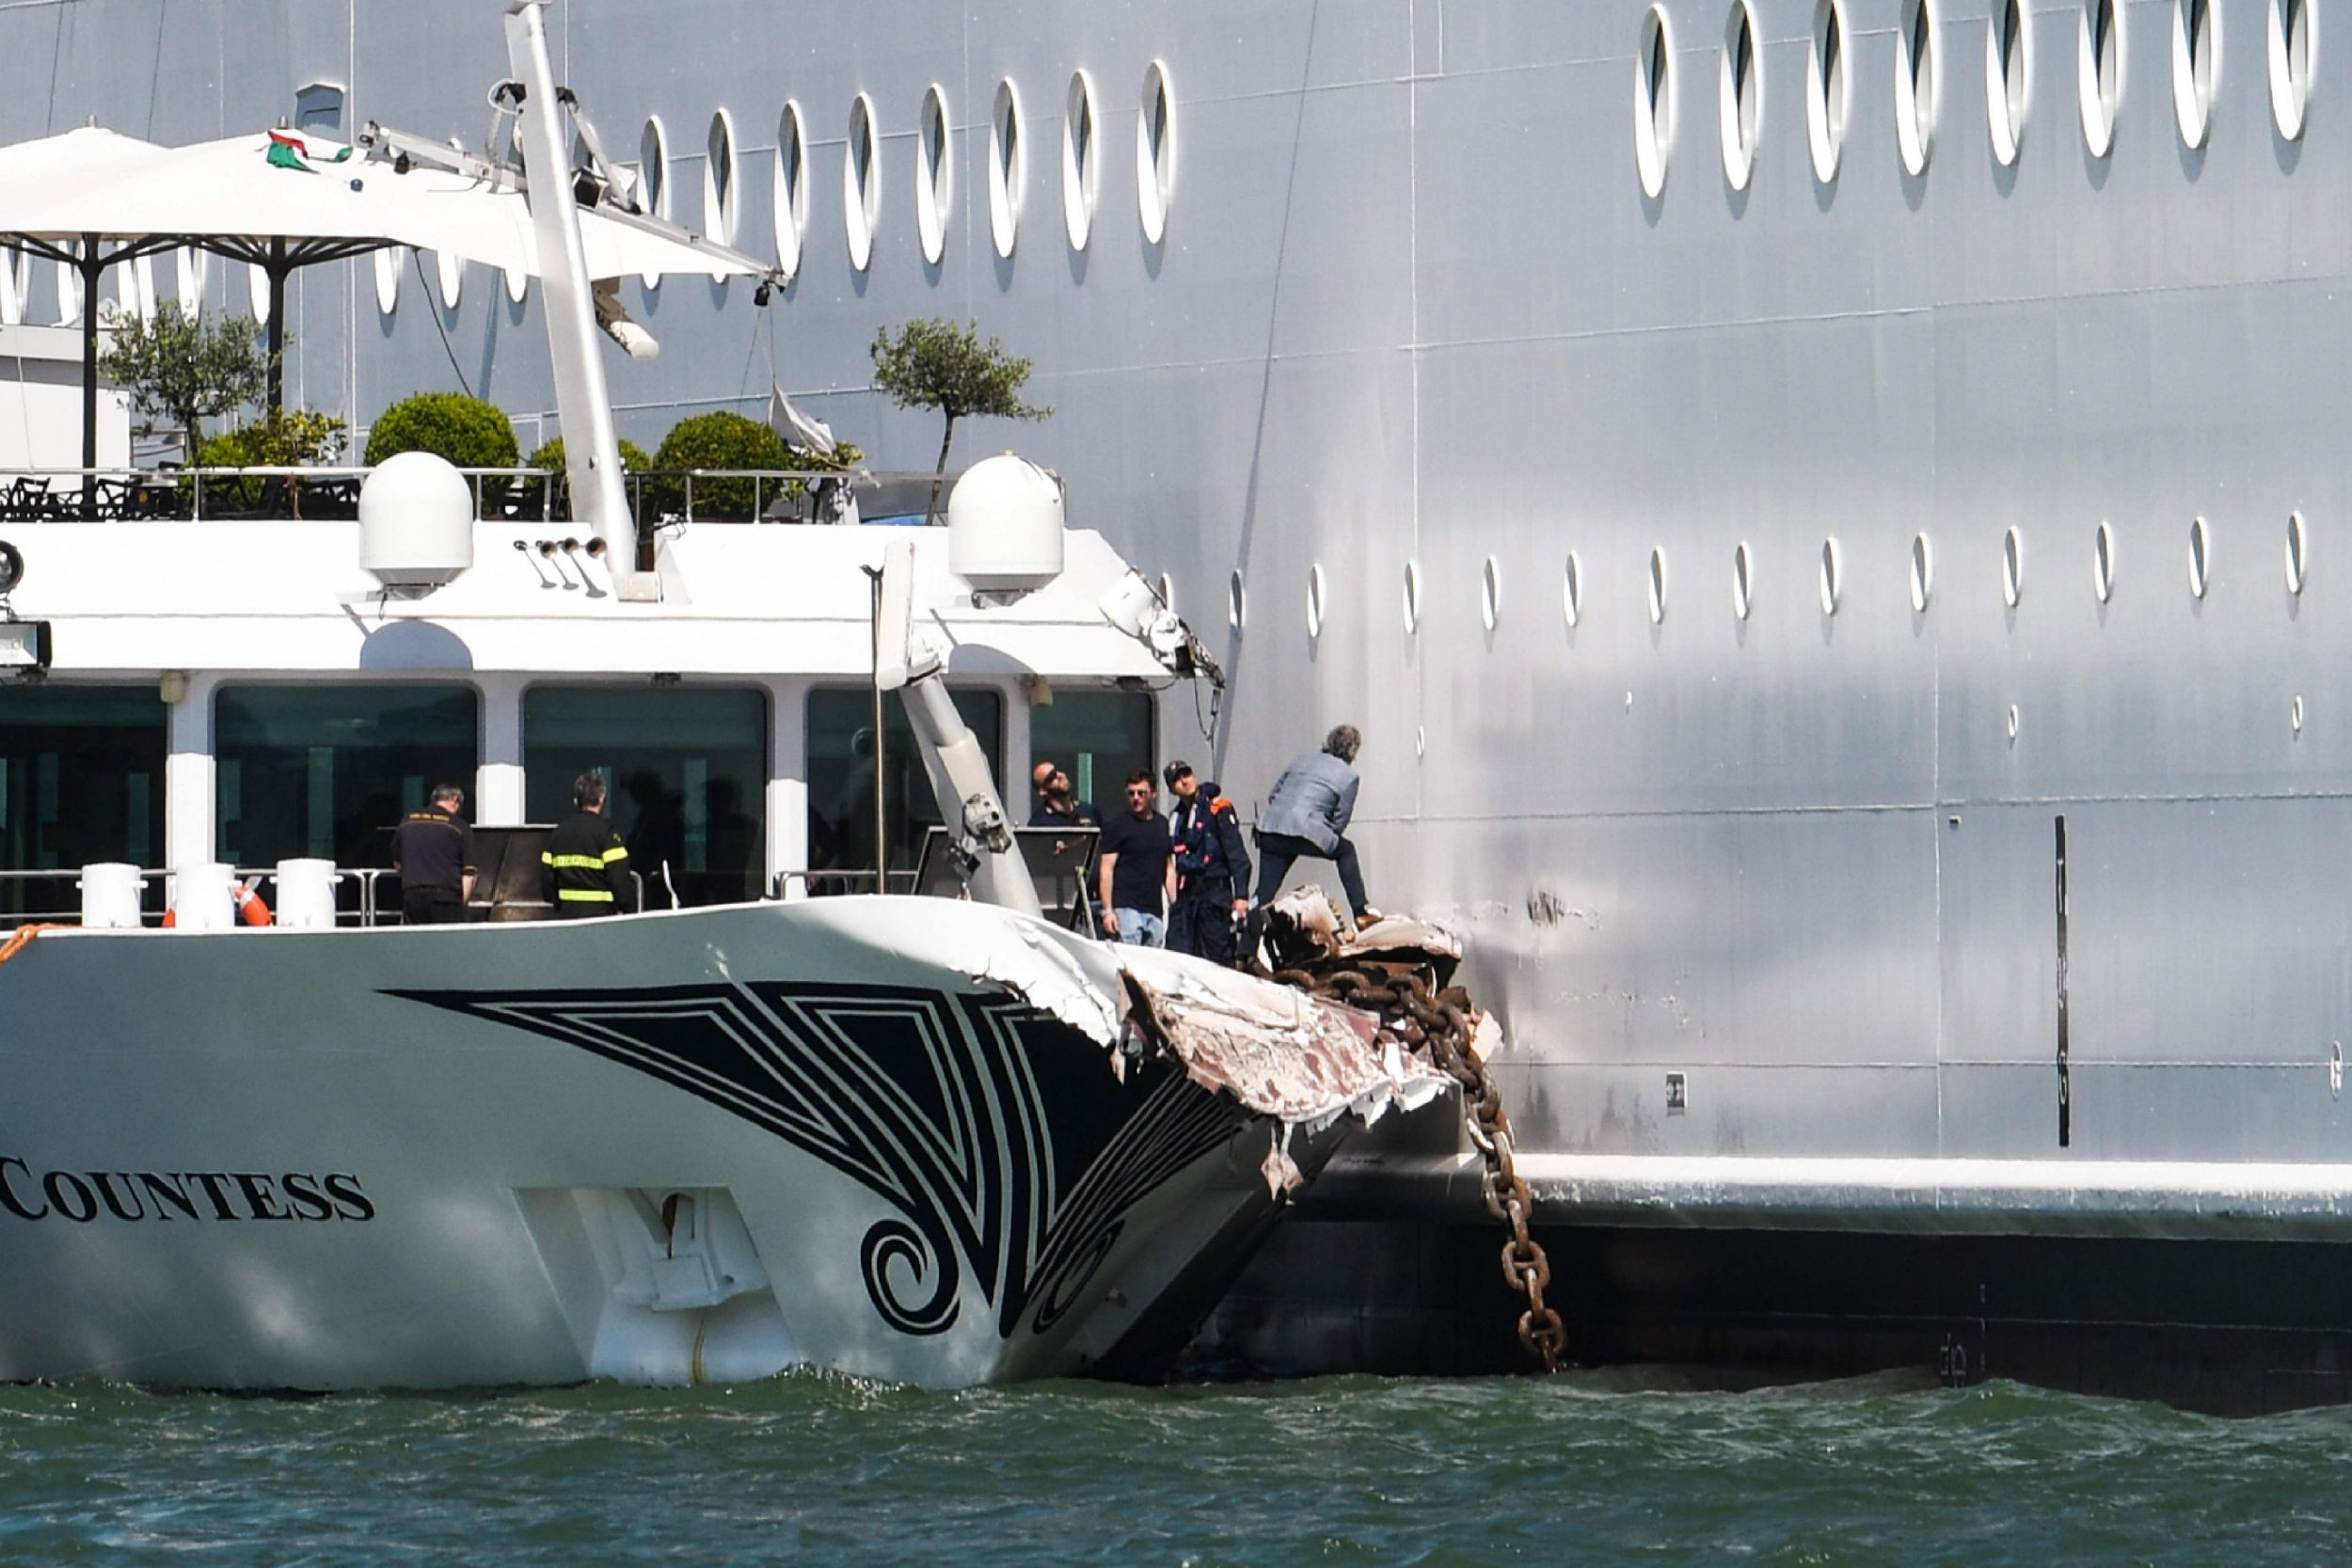 Argentina sinks Chinese boat with gunfire over 'illegal fishing' in